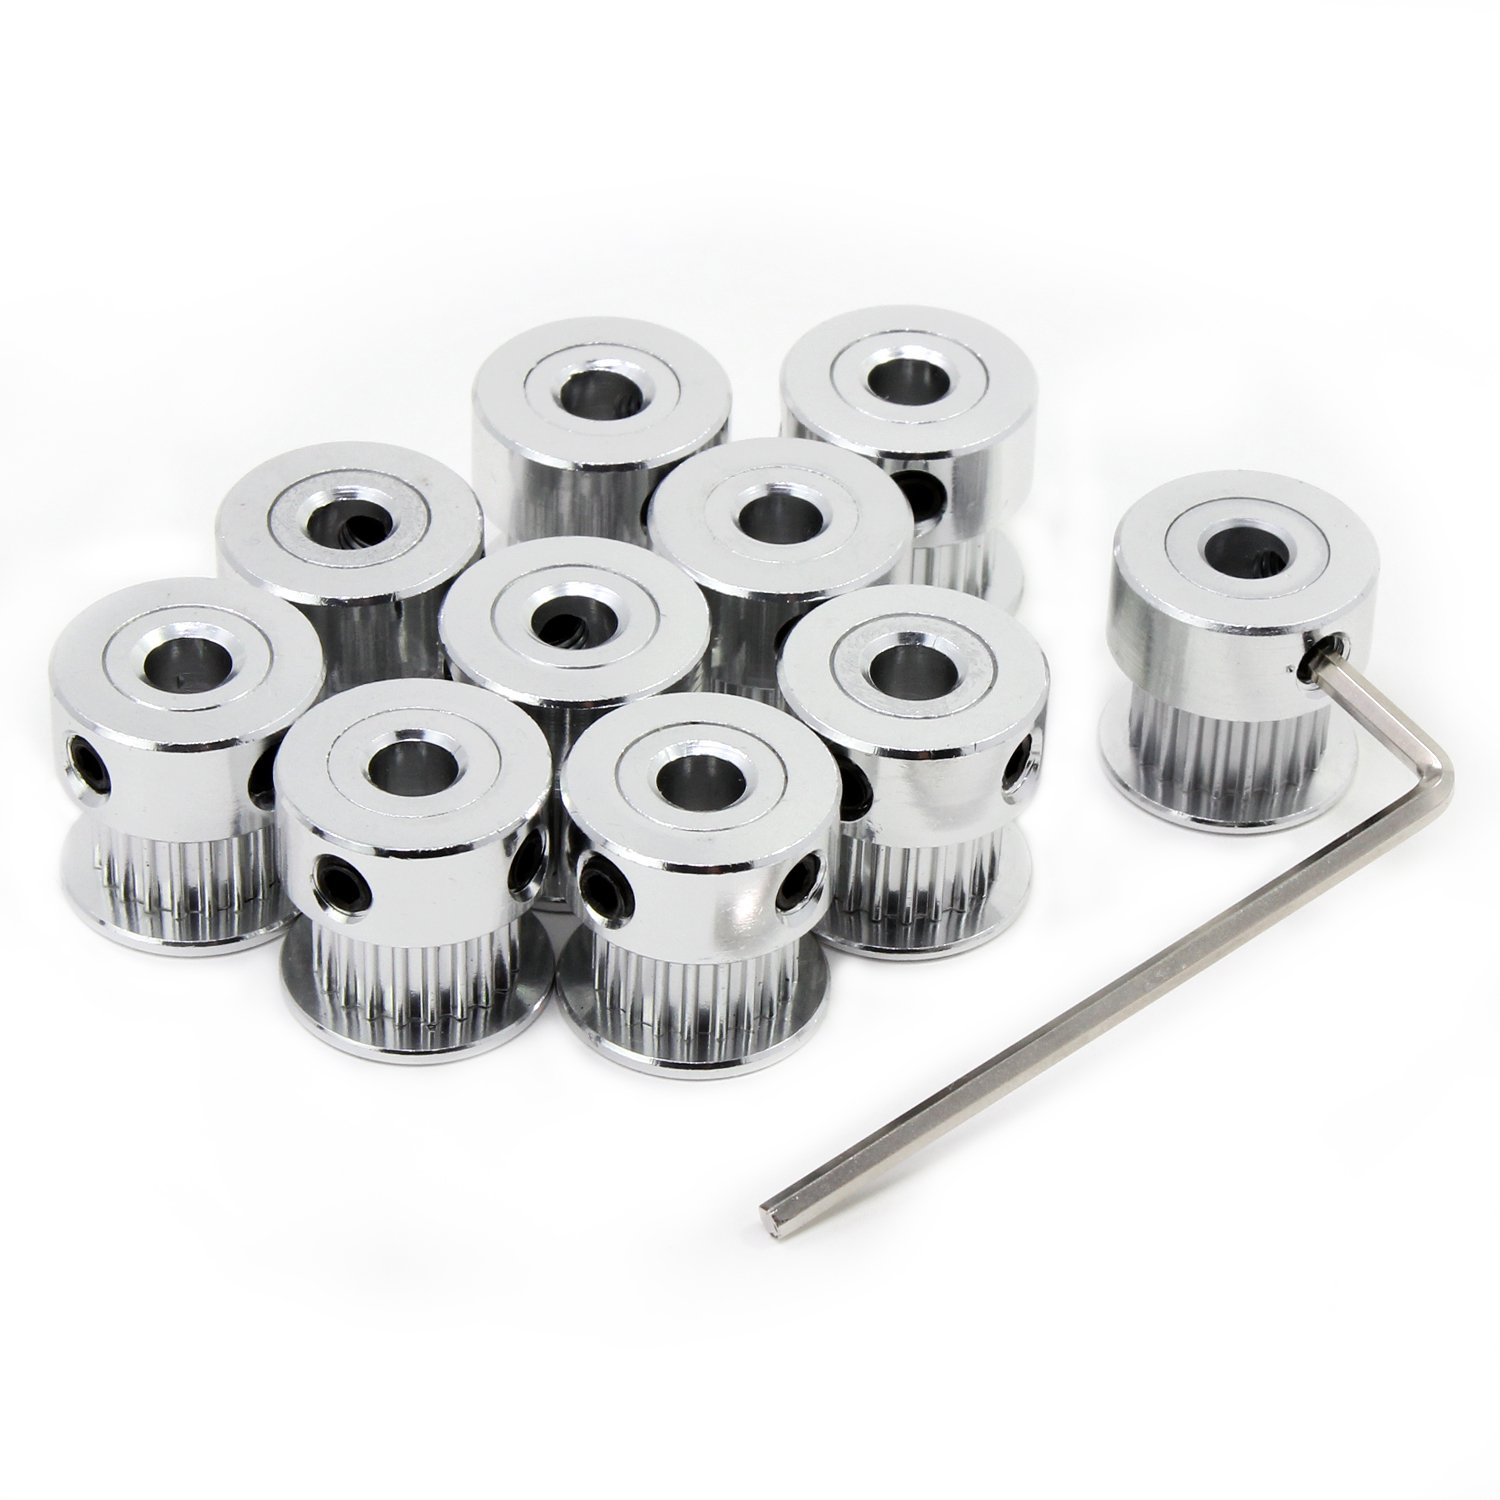 GT2 16 Teeth 5mm Bore Pulley Aluminium Timing Belt Pulley with M4 L-shaped Wrench for 3D Printer 6mm Width Timing Belt 10 Pieces Timing Pulley